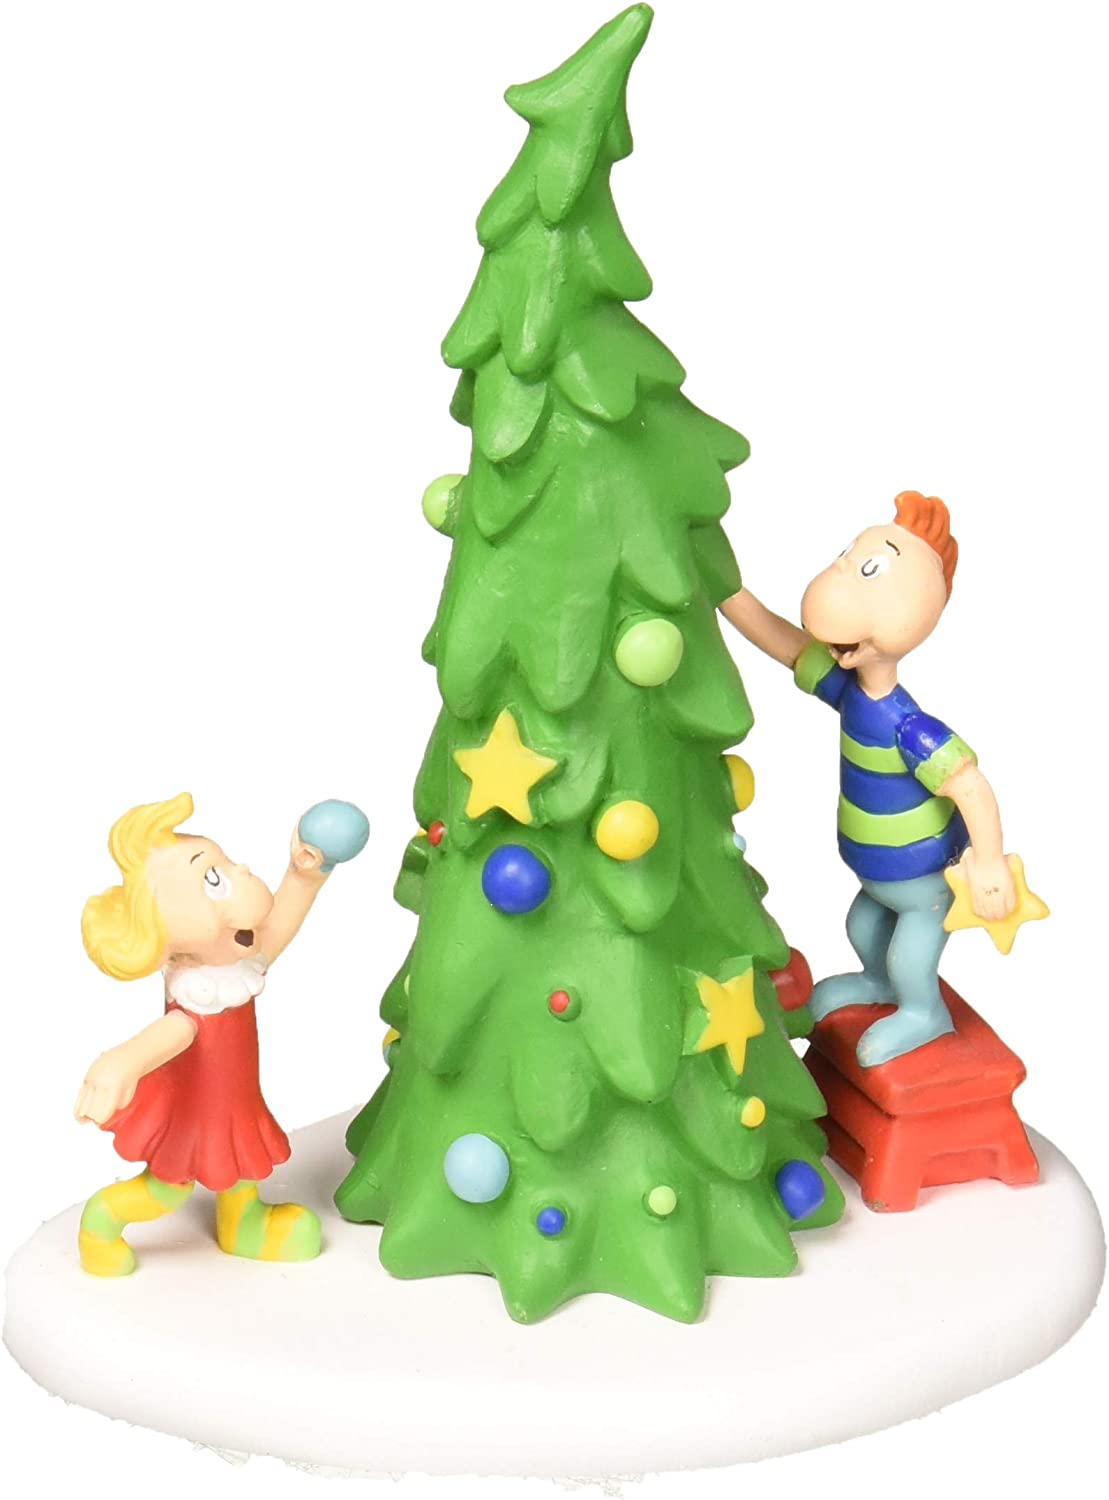 Amazon Com Department 56 Dr Seuss The Grinch Village Accessories Whoville Christmas Tree Figurine 4 Inch Multicolor Home Kitchen